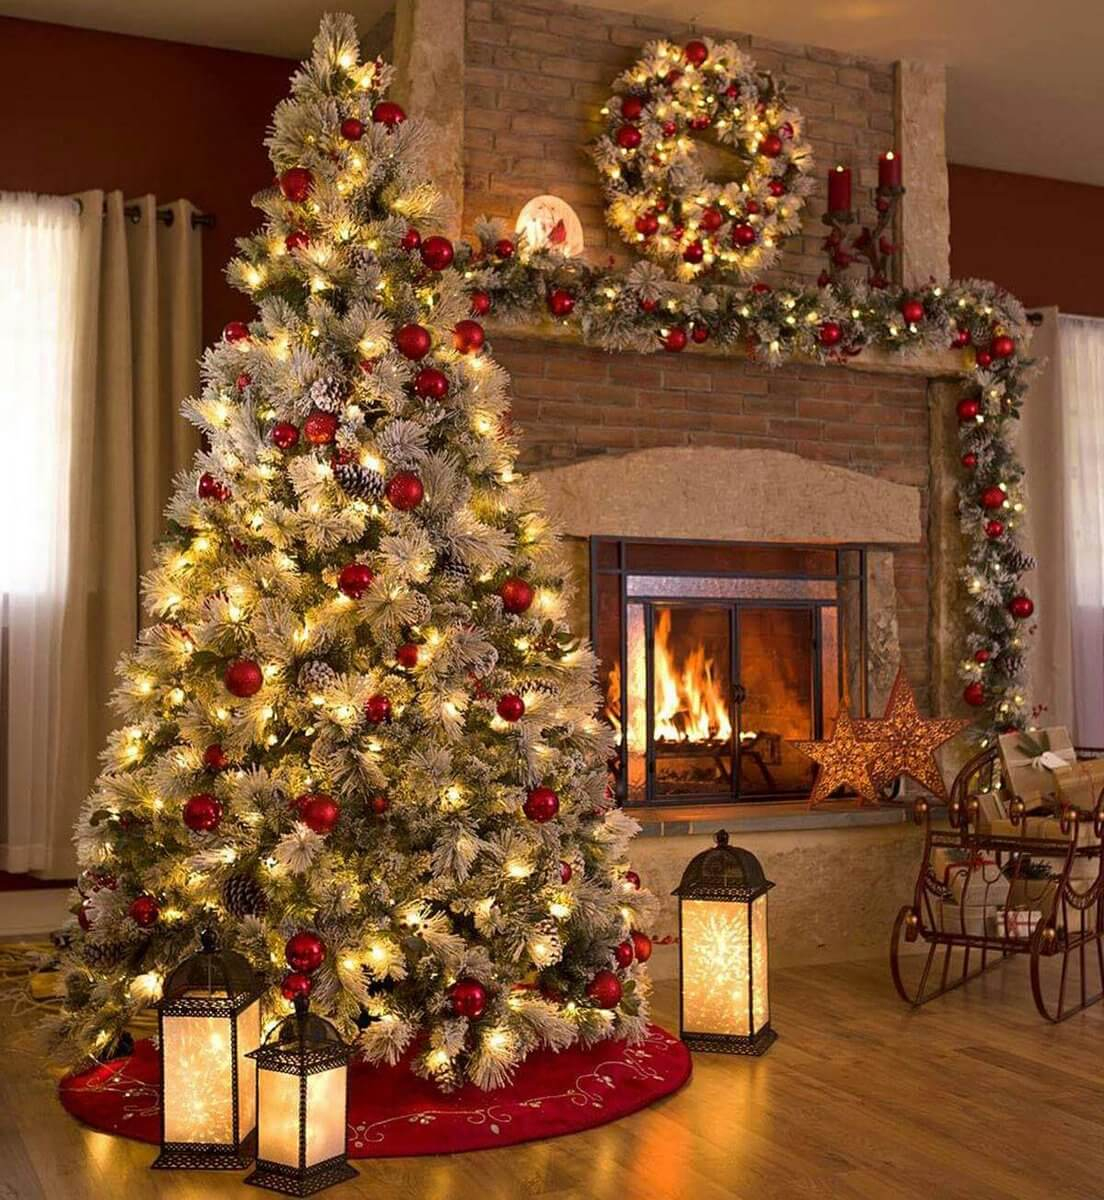 Elite 32 Best Christmas Living Room Decor Ideas And Designs For 2018 intended for New Christmas Living Room